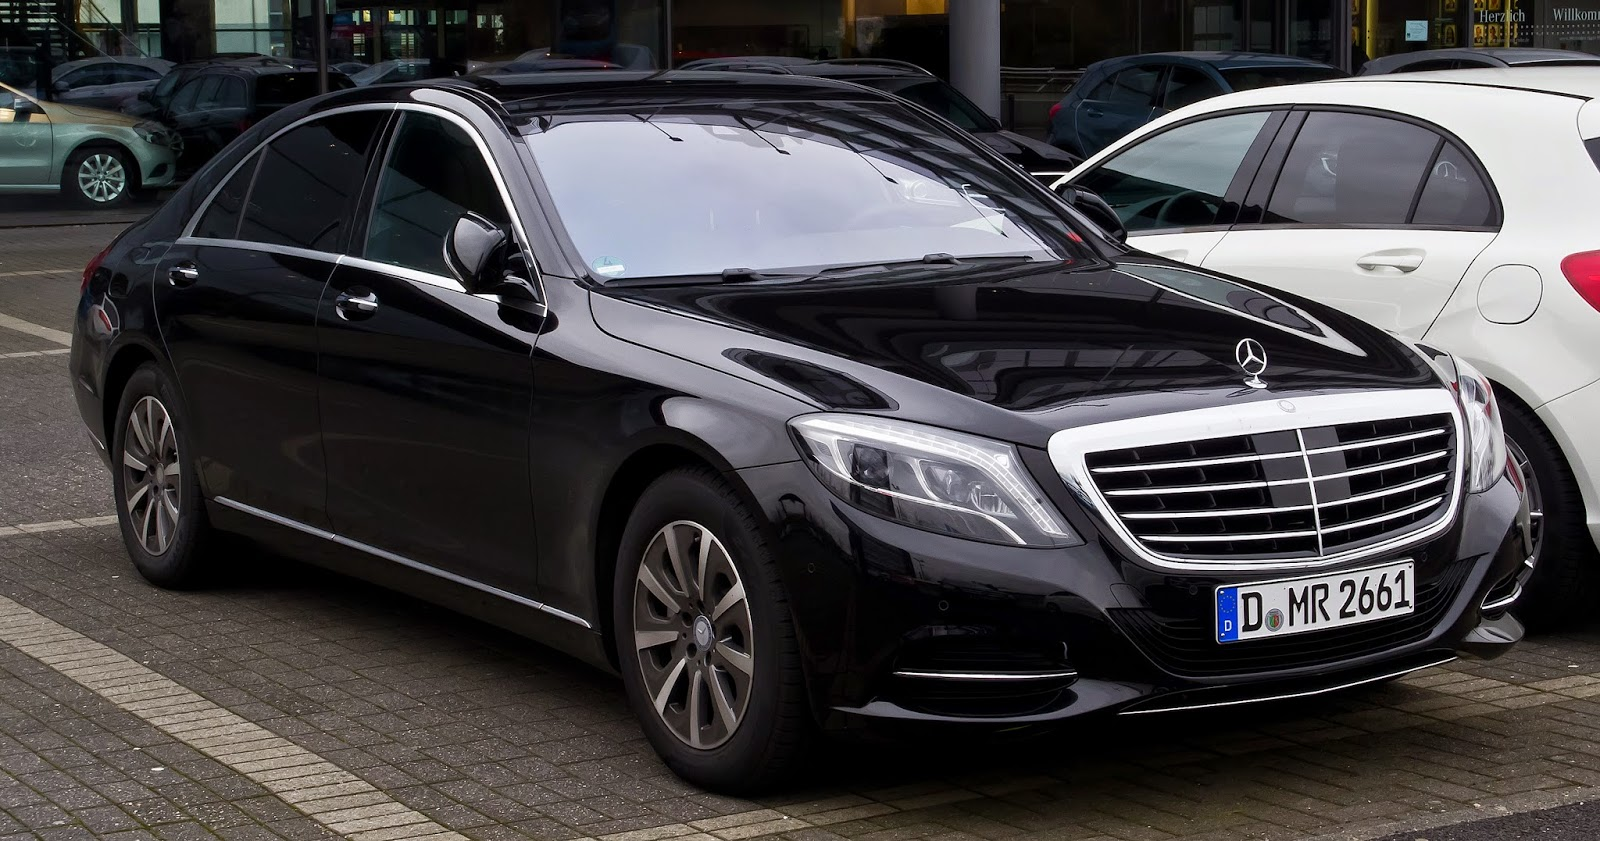 Mercedes-Benz S-Class (luxury sedan)